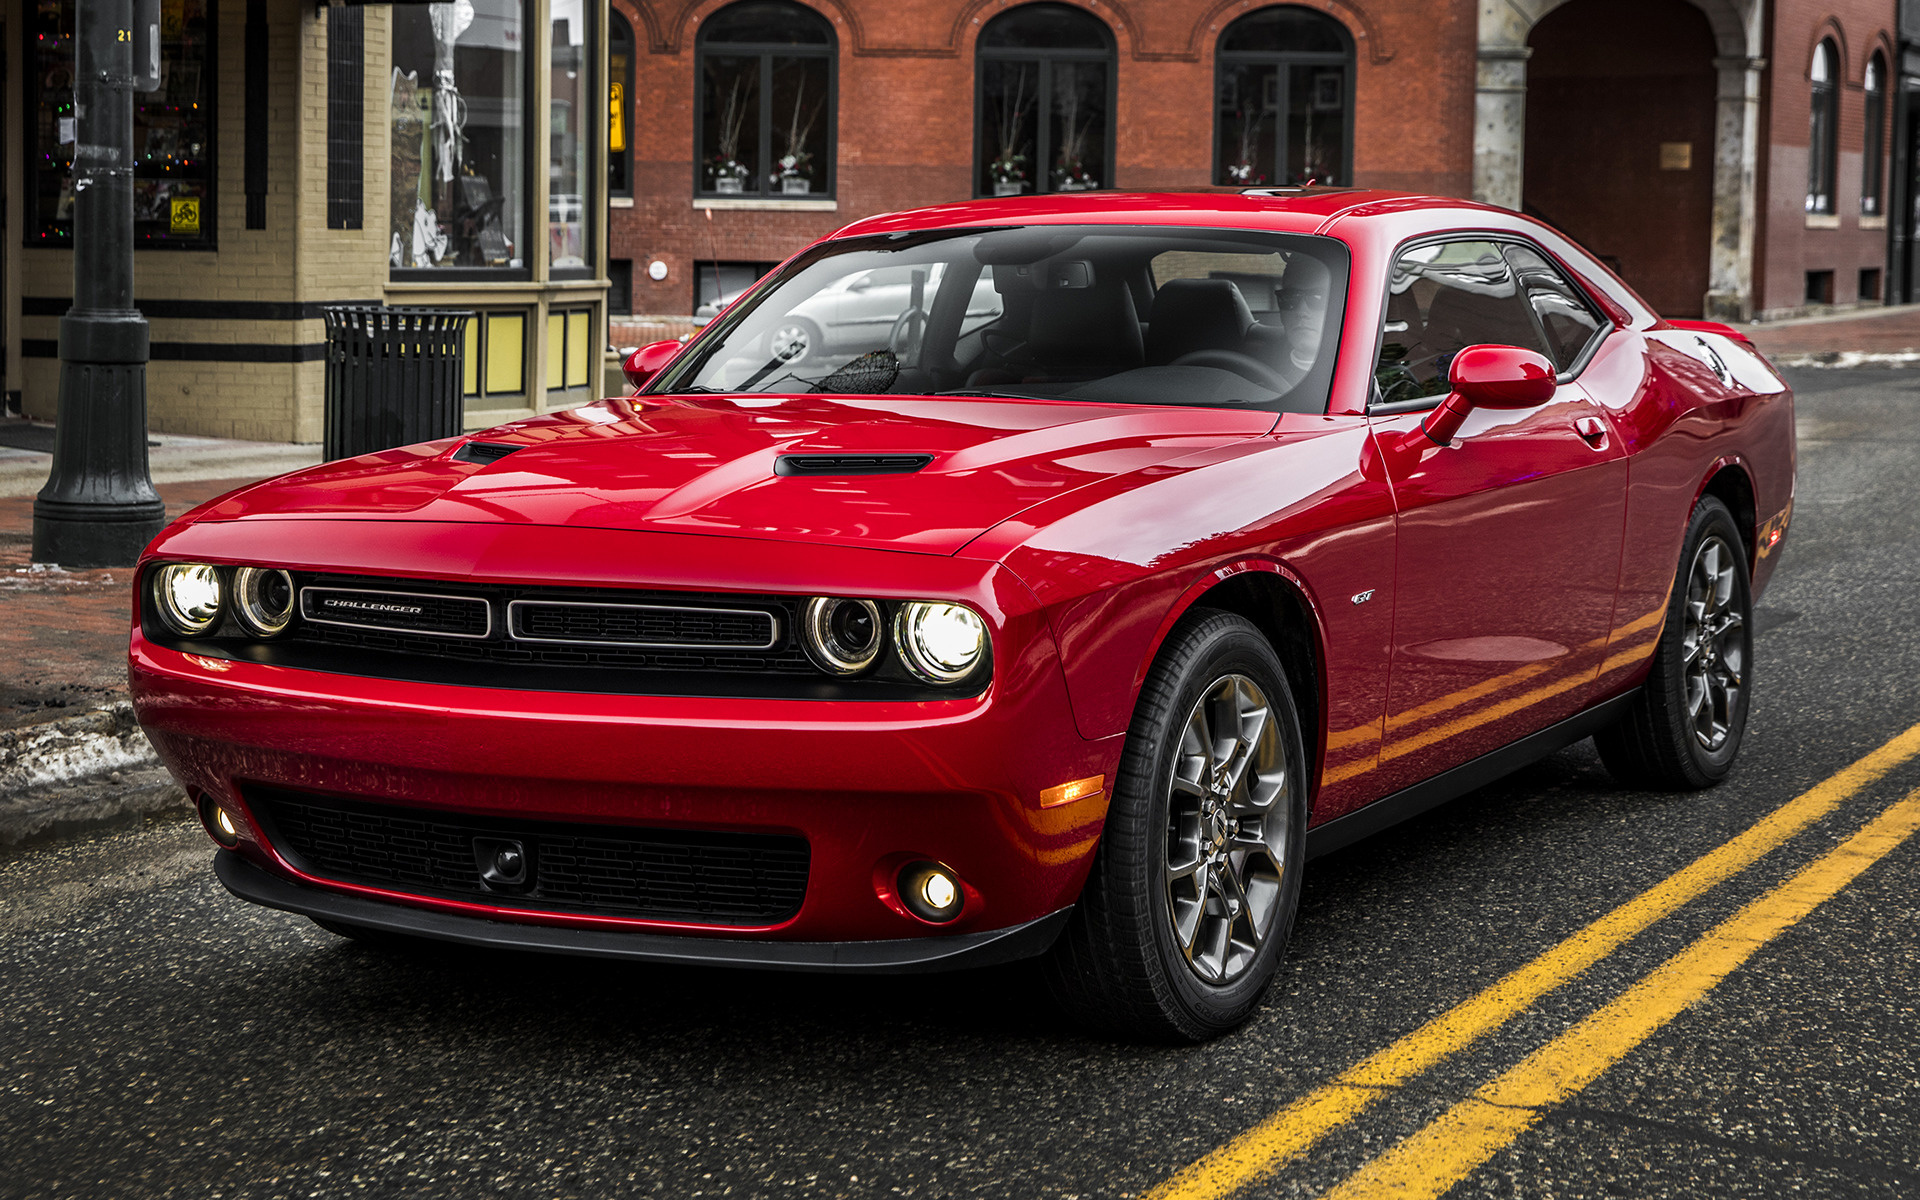 Genesis Car Wallpaper 2017 Dodge Challenger Gt Wallpapers And Hd Images Car